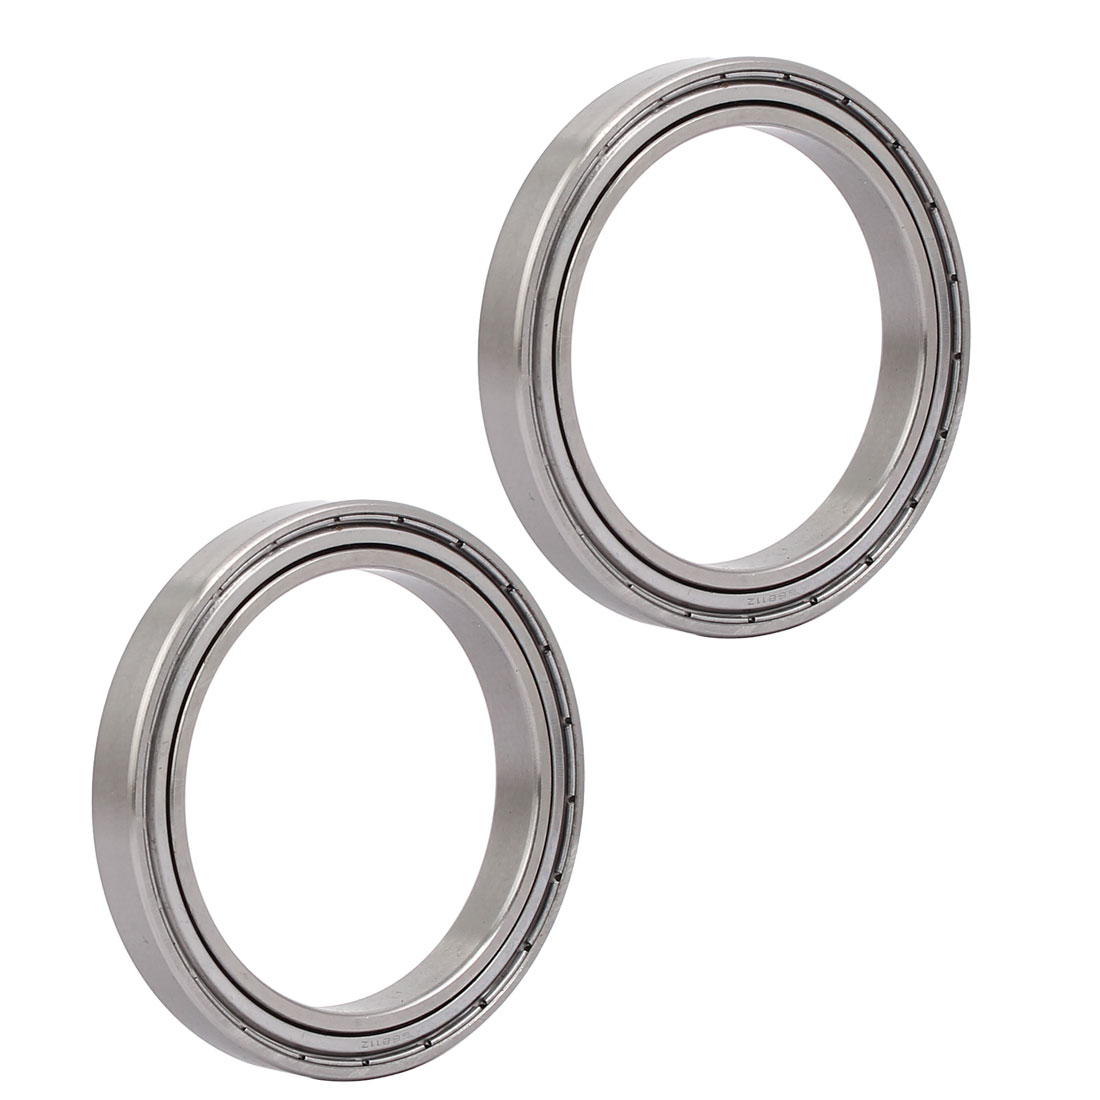 72mmx55mmx9mm 6811 Stainless Steel Shielded Deep Groove Ball Bearing 2pcs